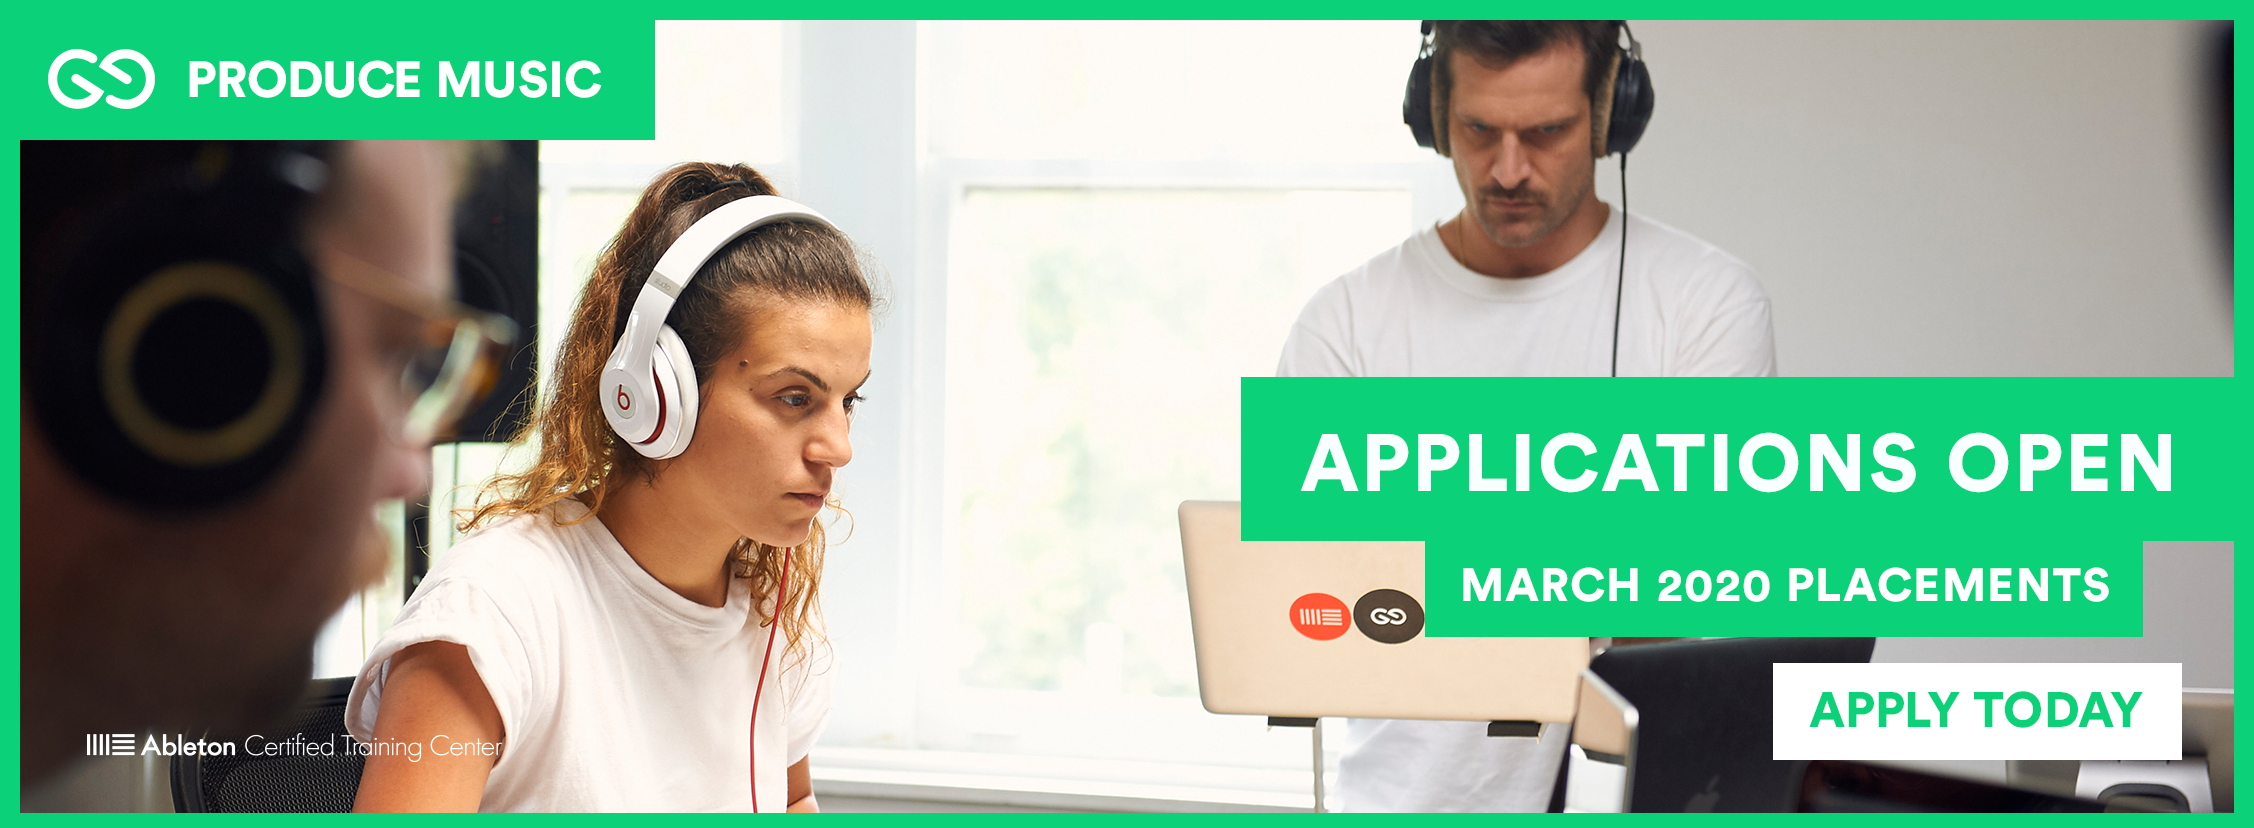 Produce Music | March 2020 Applications Now Open